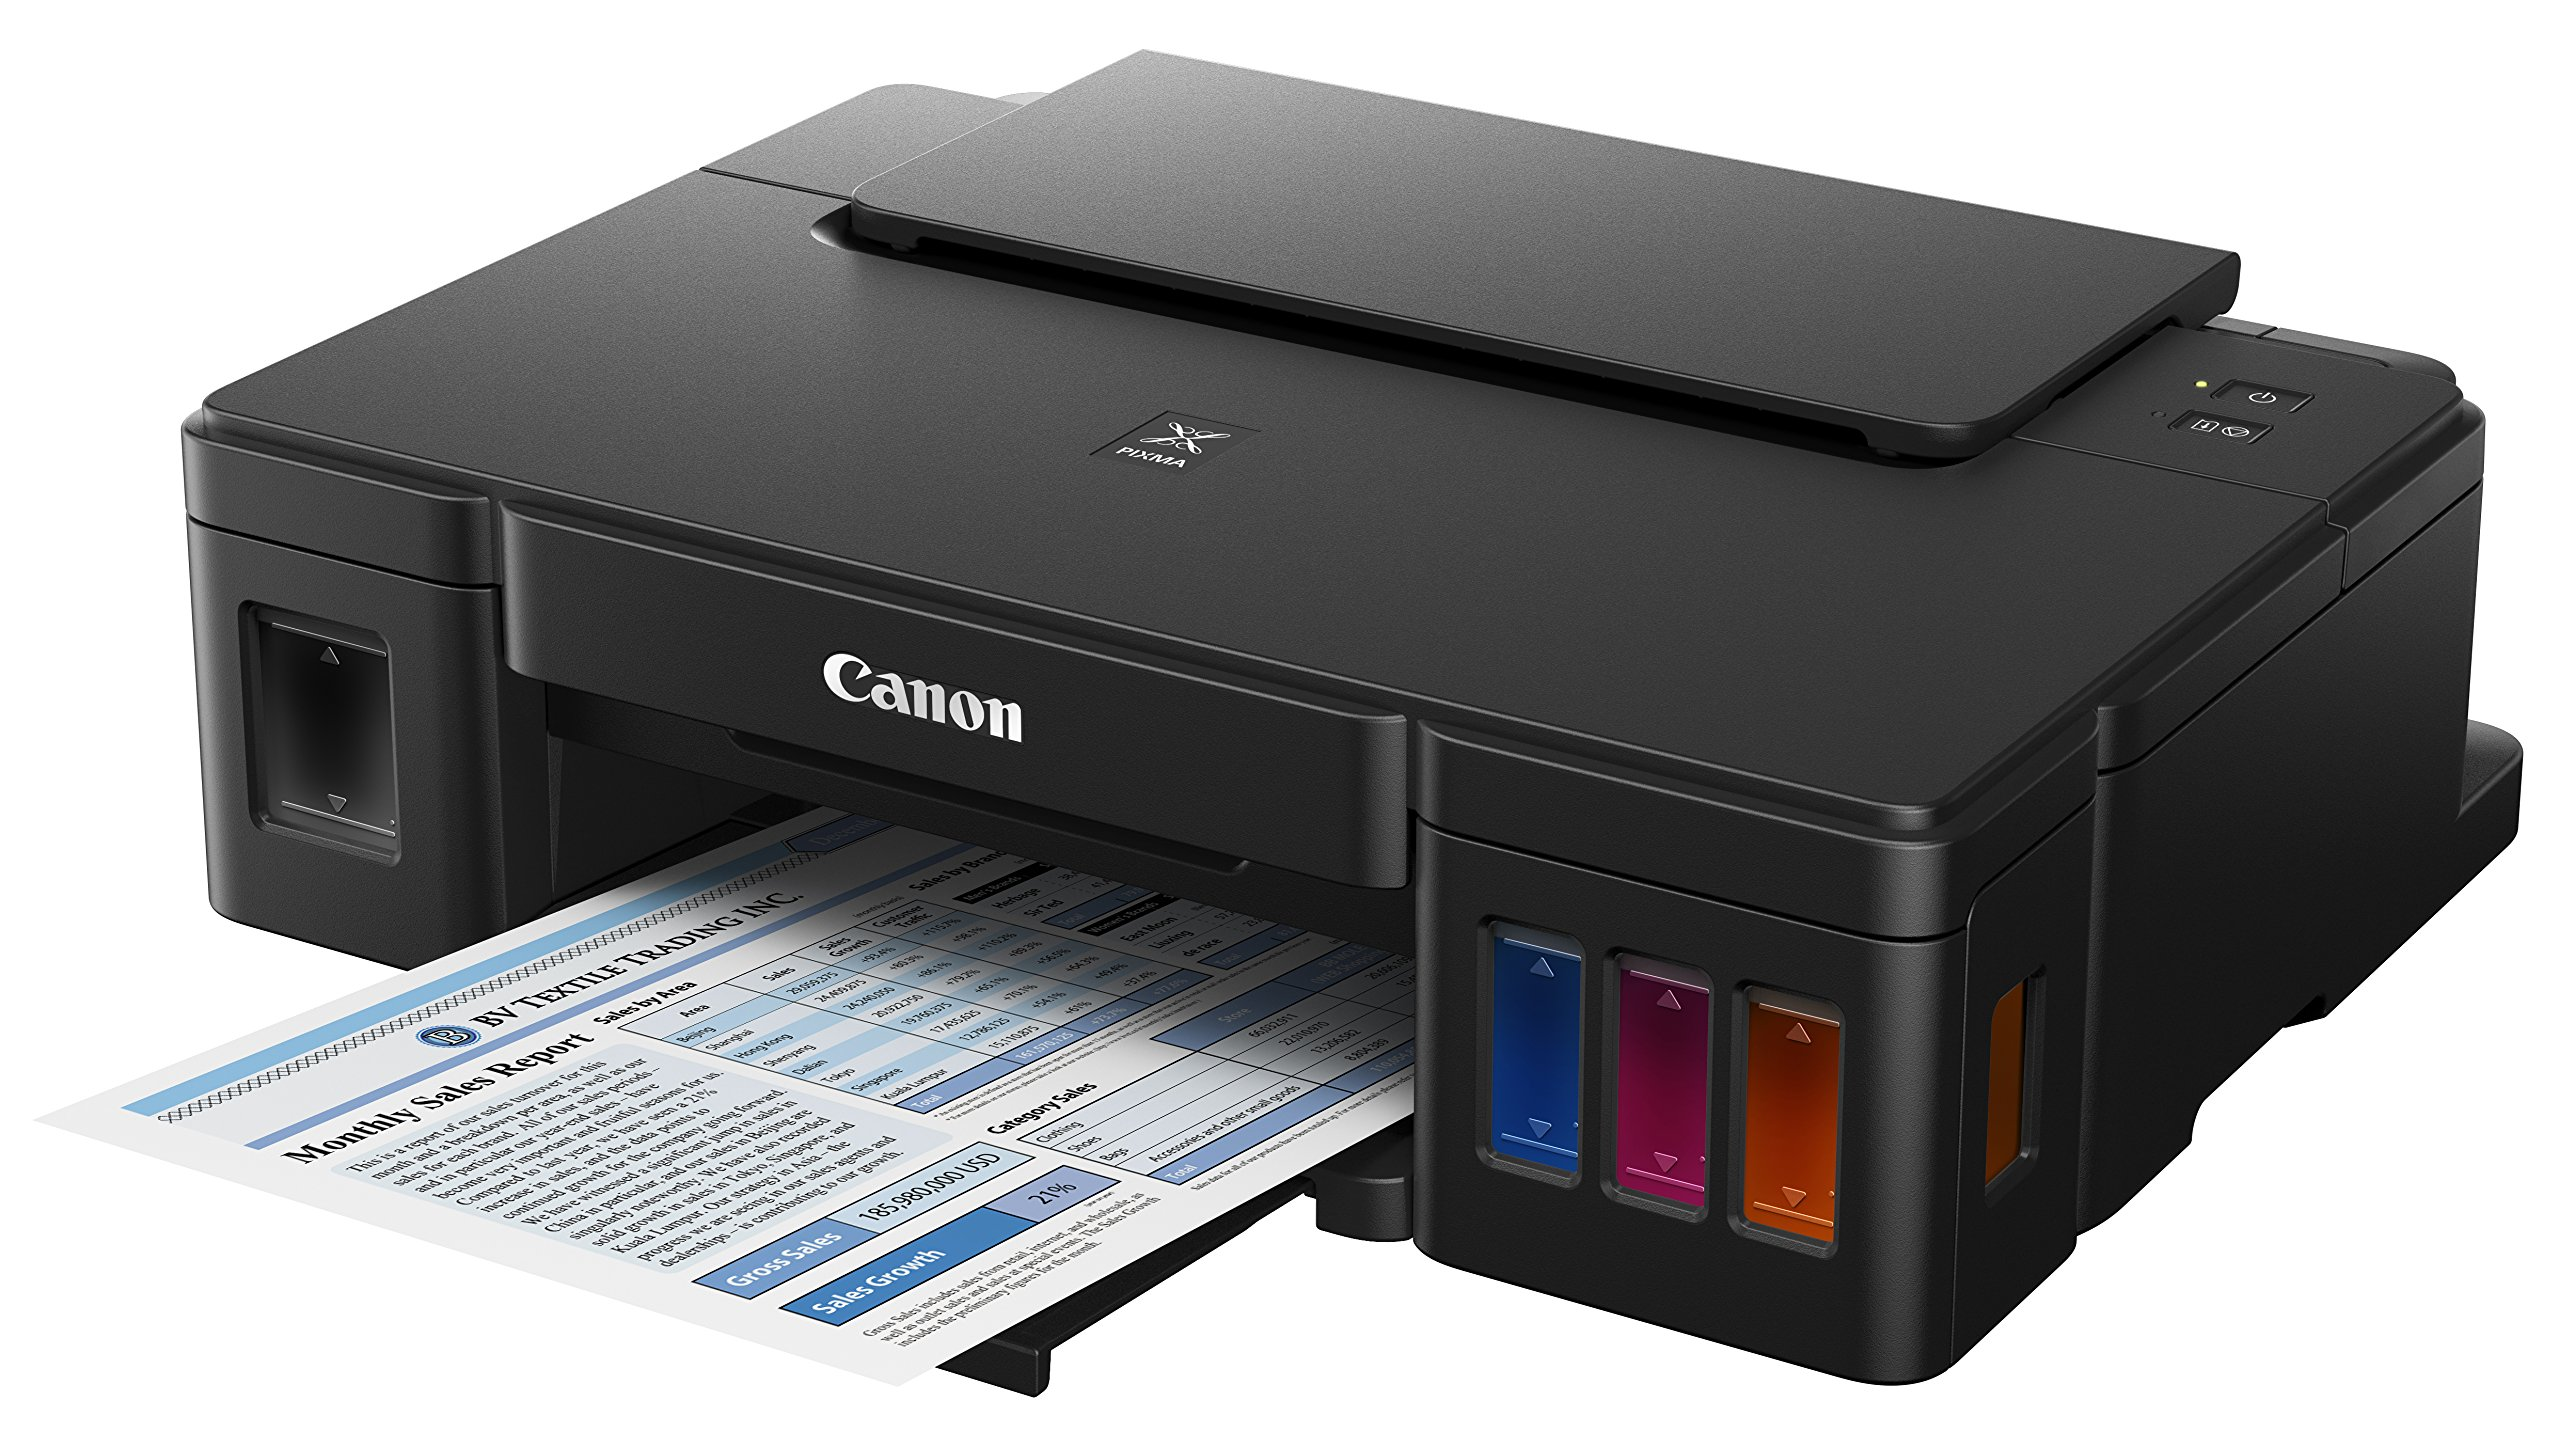 Canon PIXMA G1200 Megatank Single Function Printer, Print Only, Black by Canon (Image #2)